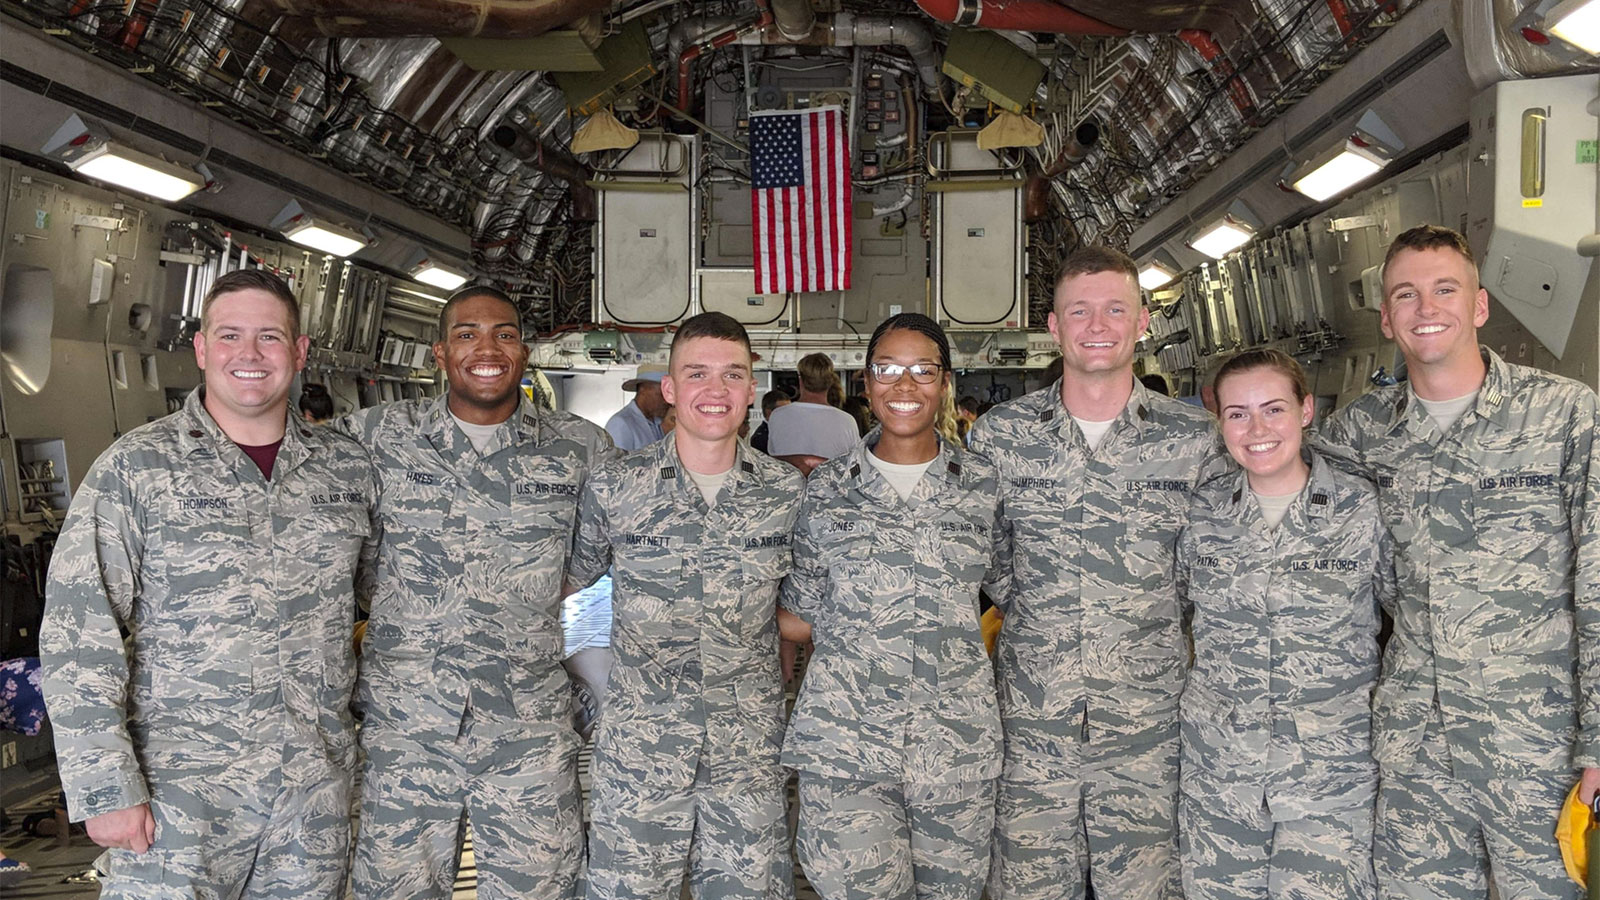 Major Justin Humphrey and his fellow ROTC cadets pose for a photo inside a military plane.